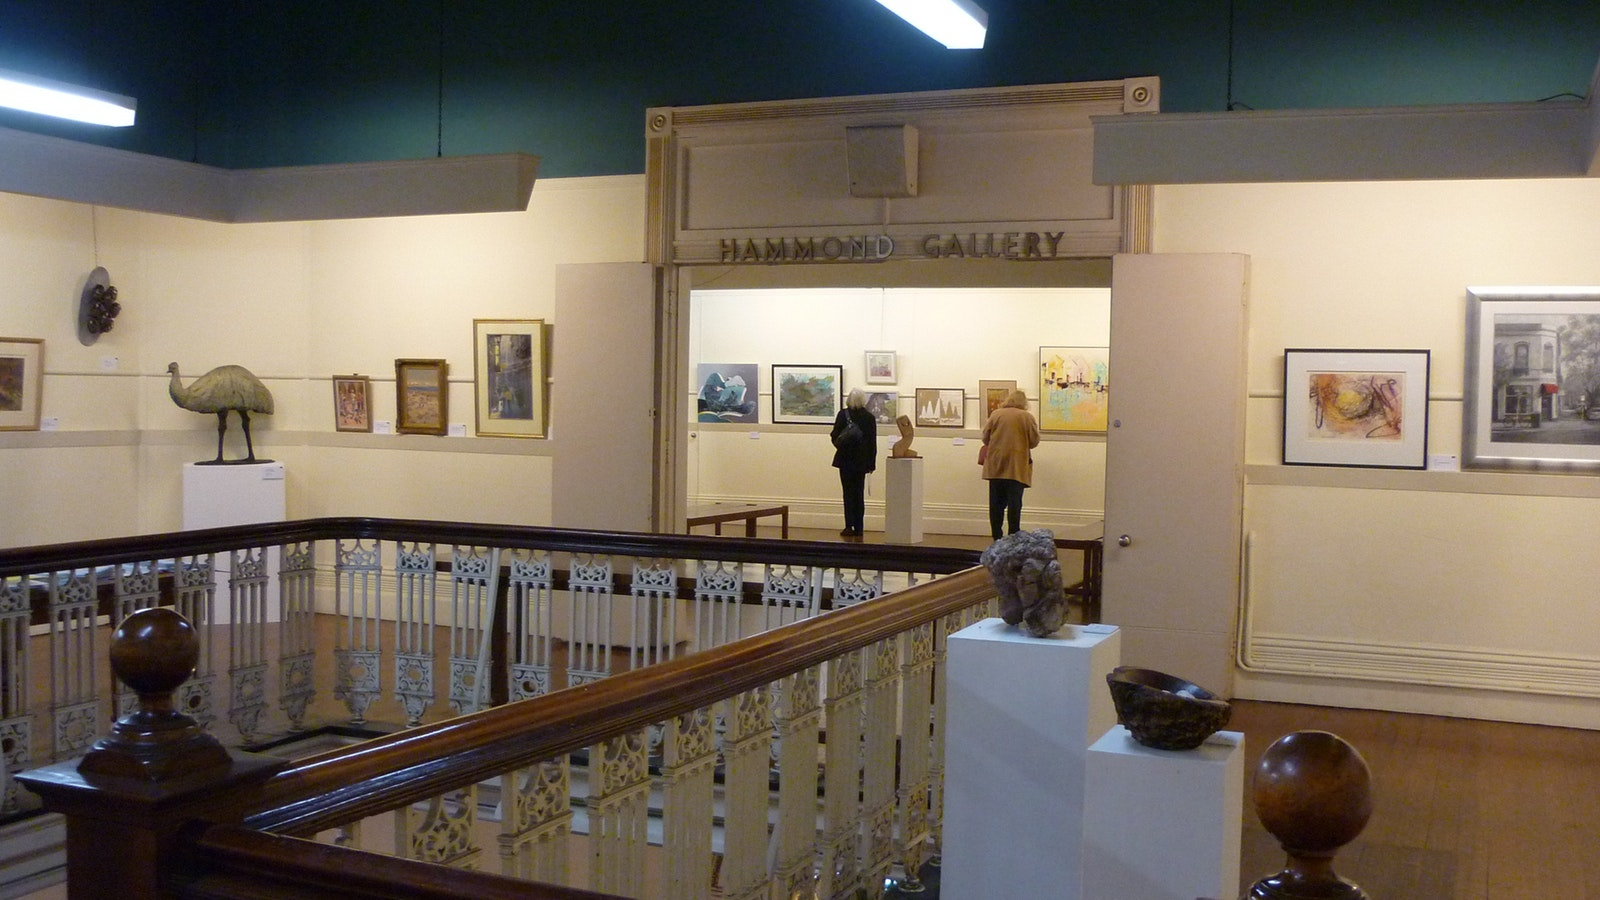 McCubbin Gallery and Frater Gallery